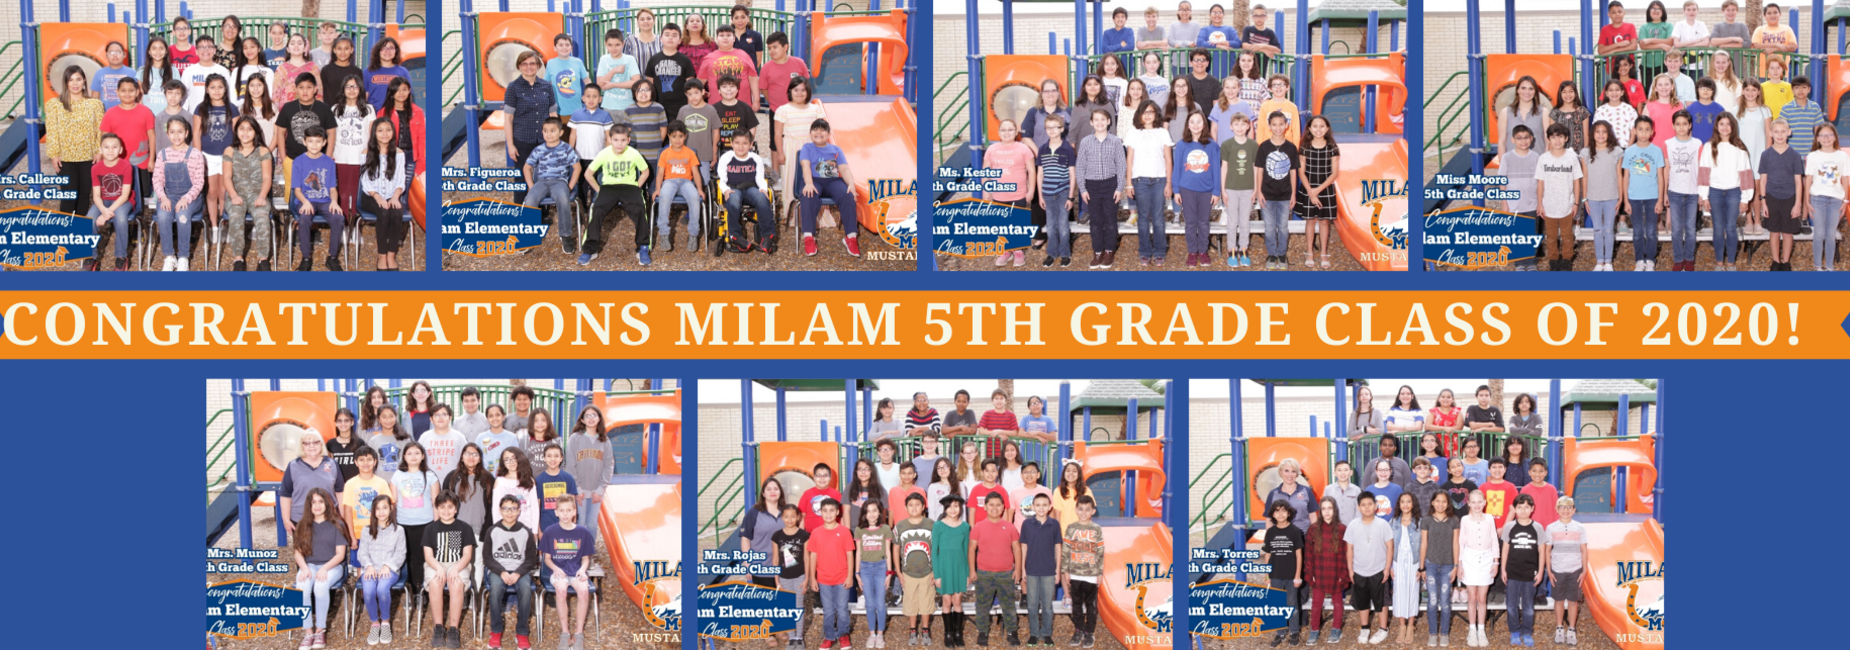 Congrats Milam 5th Grade Class of 2020!